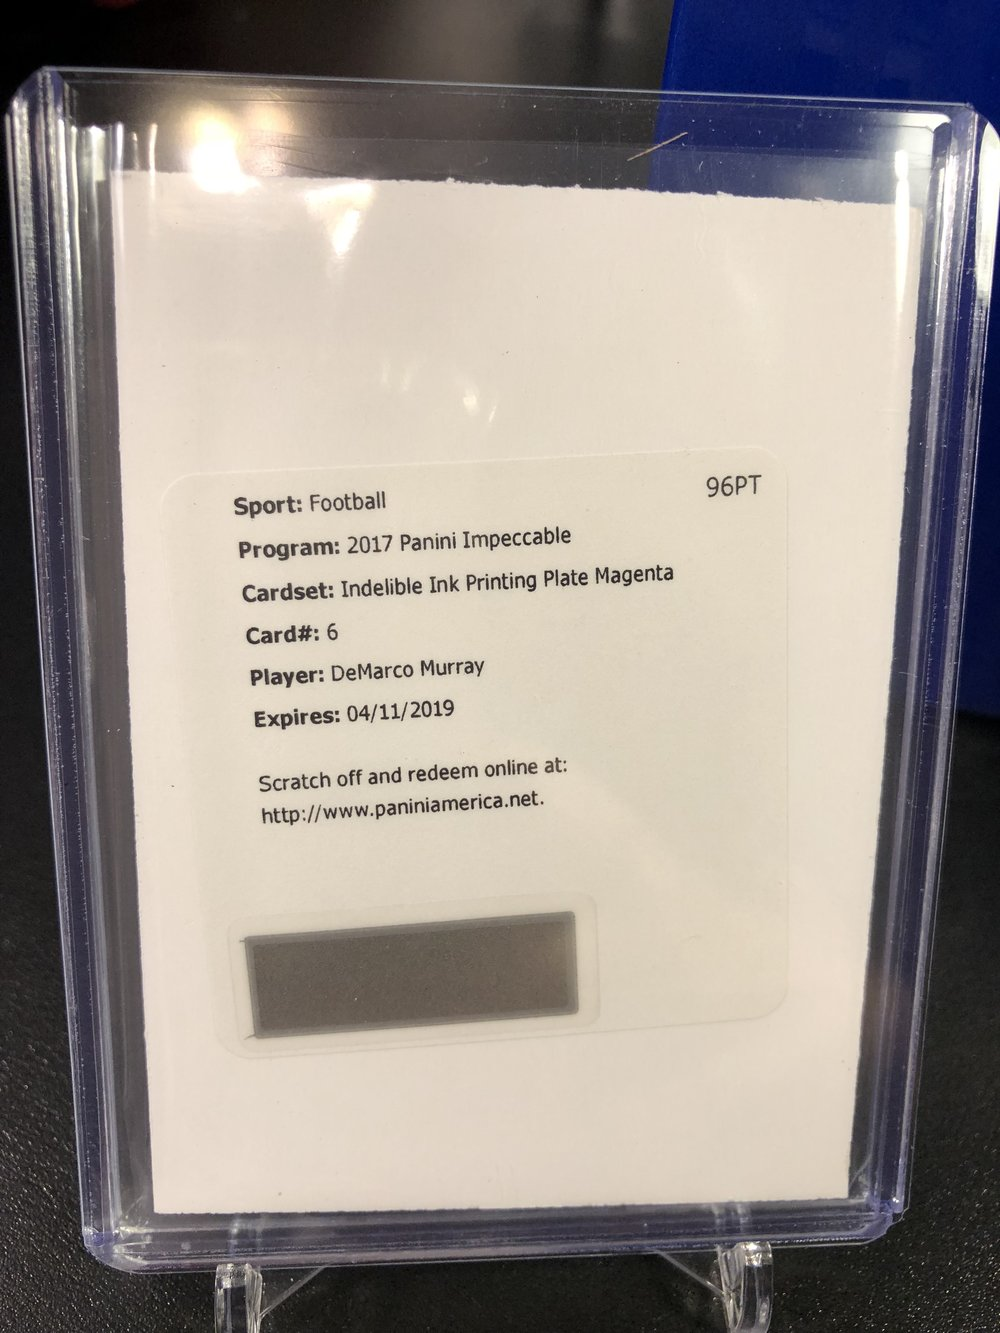 2017 Panini Impeccable DeMarco Murray Indelible Ink 1/1 Printing Plate Auto Redemption